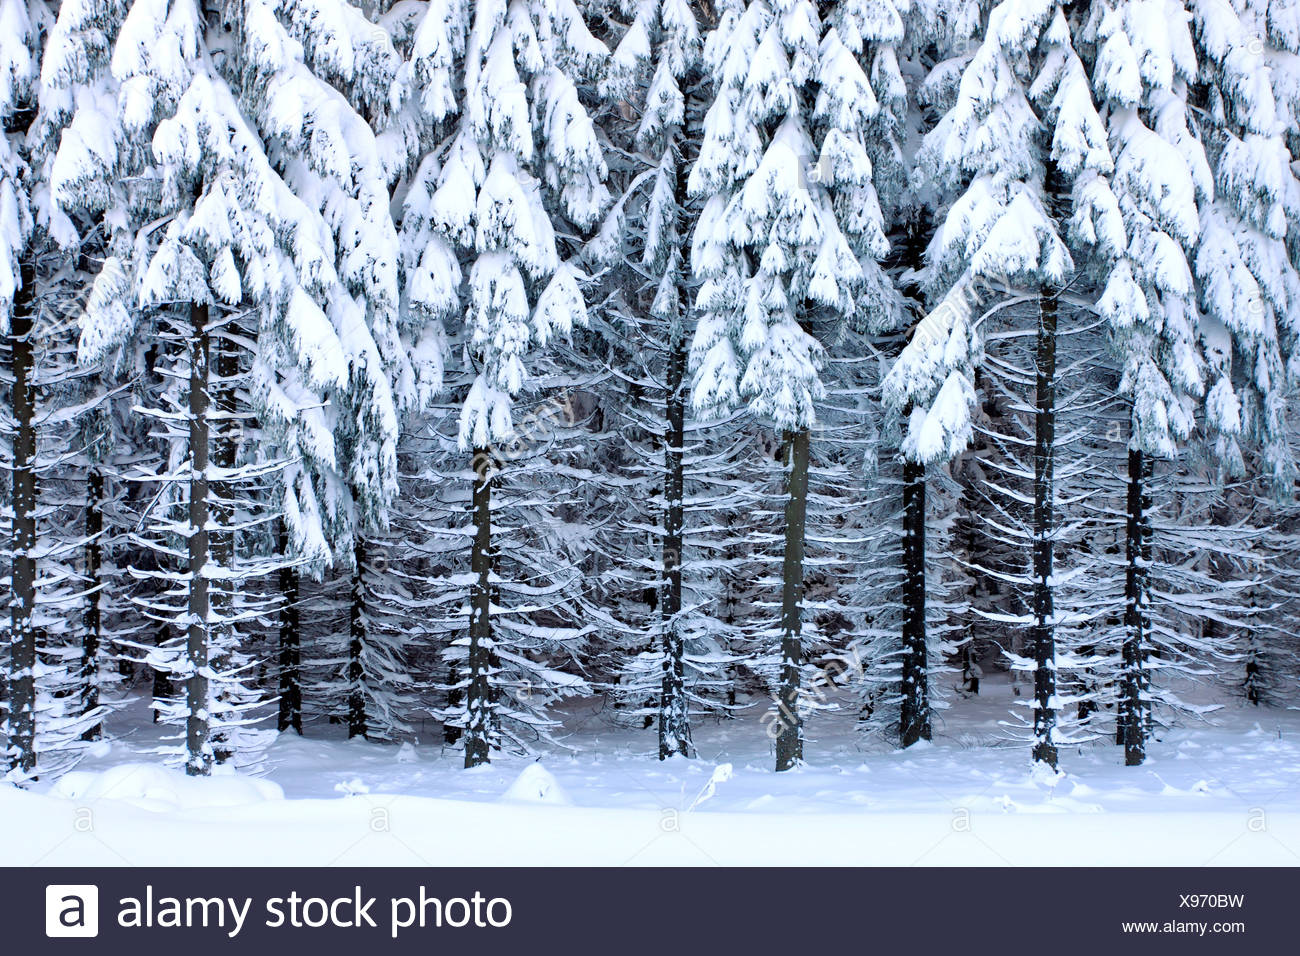 Norway spruce (Picea abies), view into a snow-covered spruce forest, Germany, Saxony, Erz Mountains Stock Photo